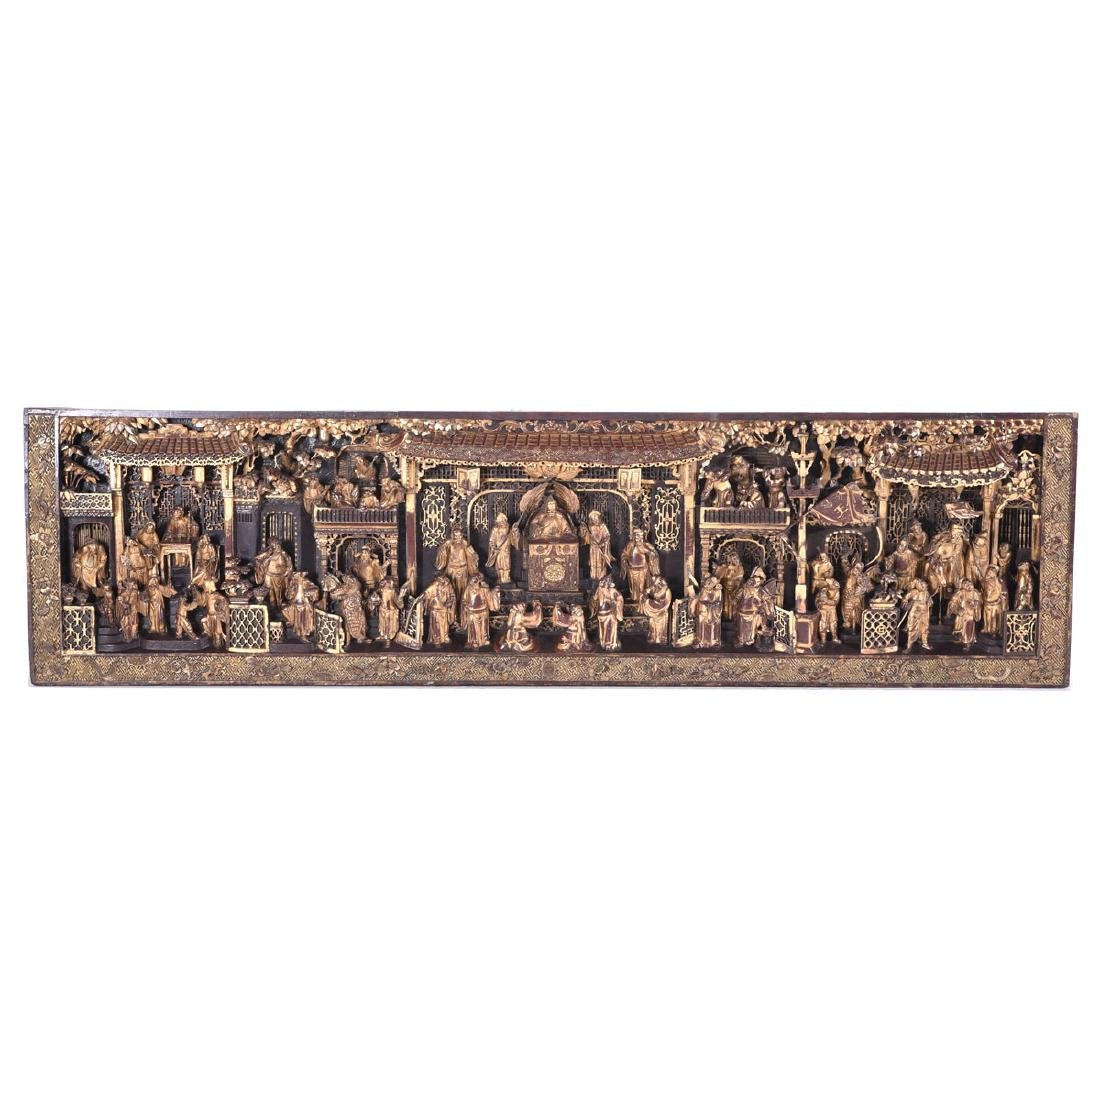 Massive Gilt Wood Horizontal Architectural Panel, 19th